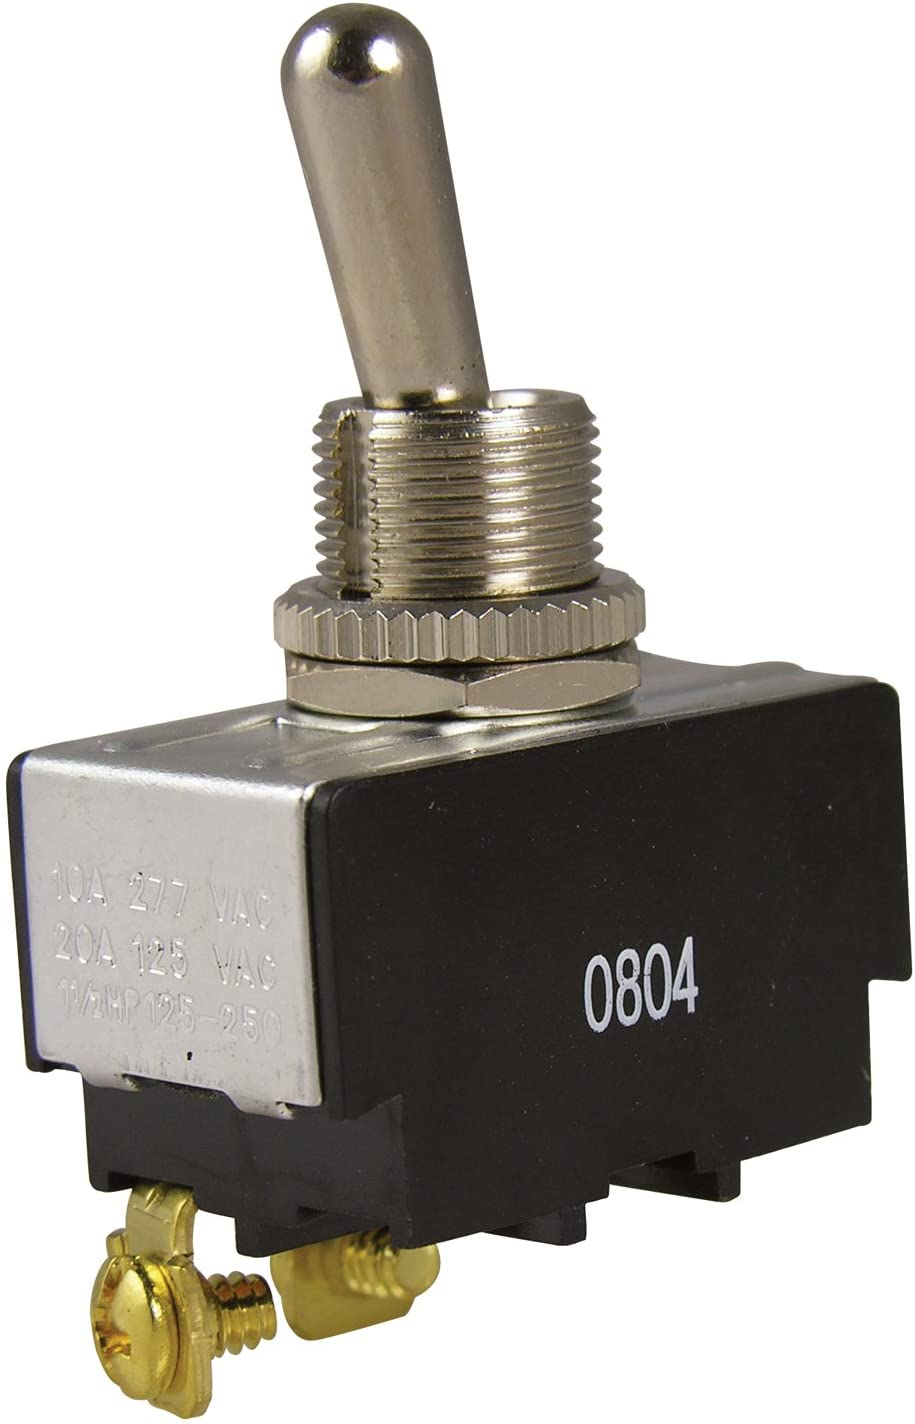 Gardner Bender GSW-10 Electrical Toggle Switch, SPST, ON-OFF, 20 A/125V AC, Screw Terminal